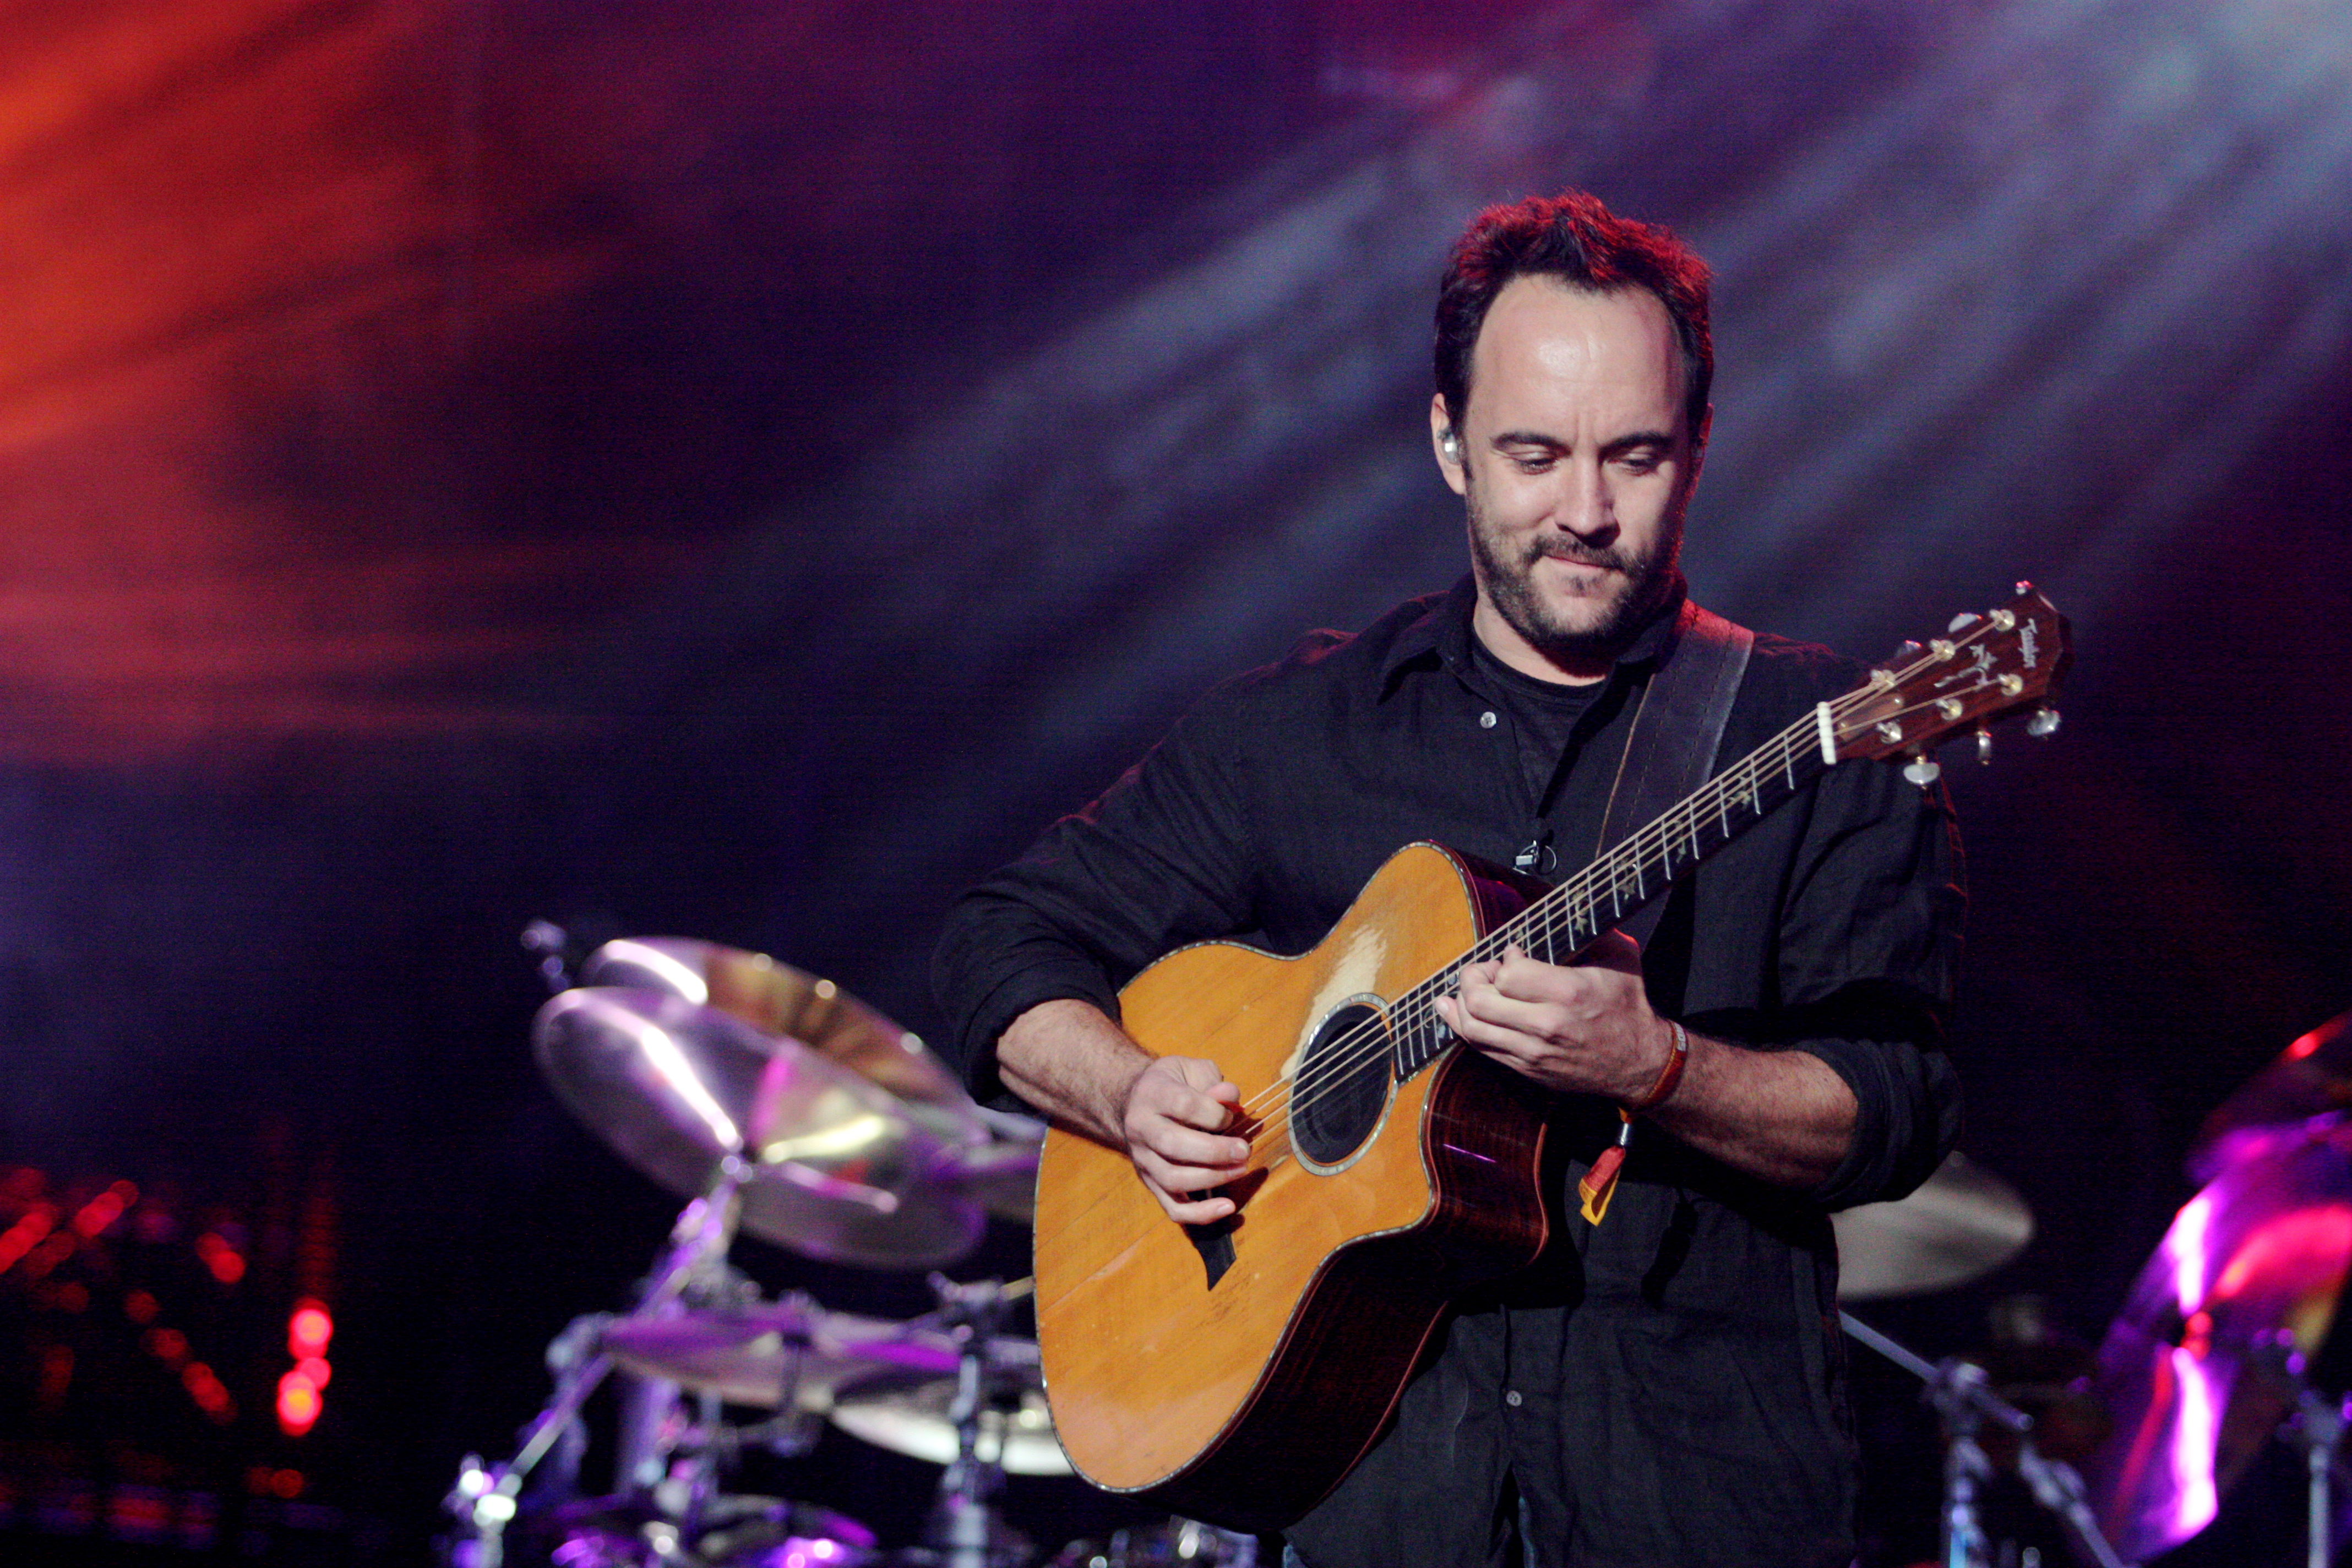 dave-matthews-band-lead-singer-dave-matthews-talking-about-south-africa